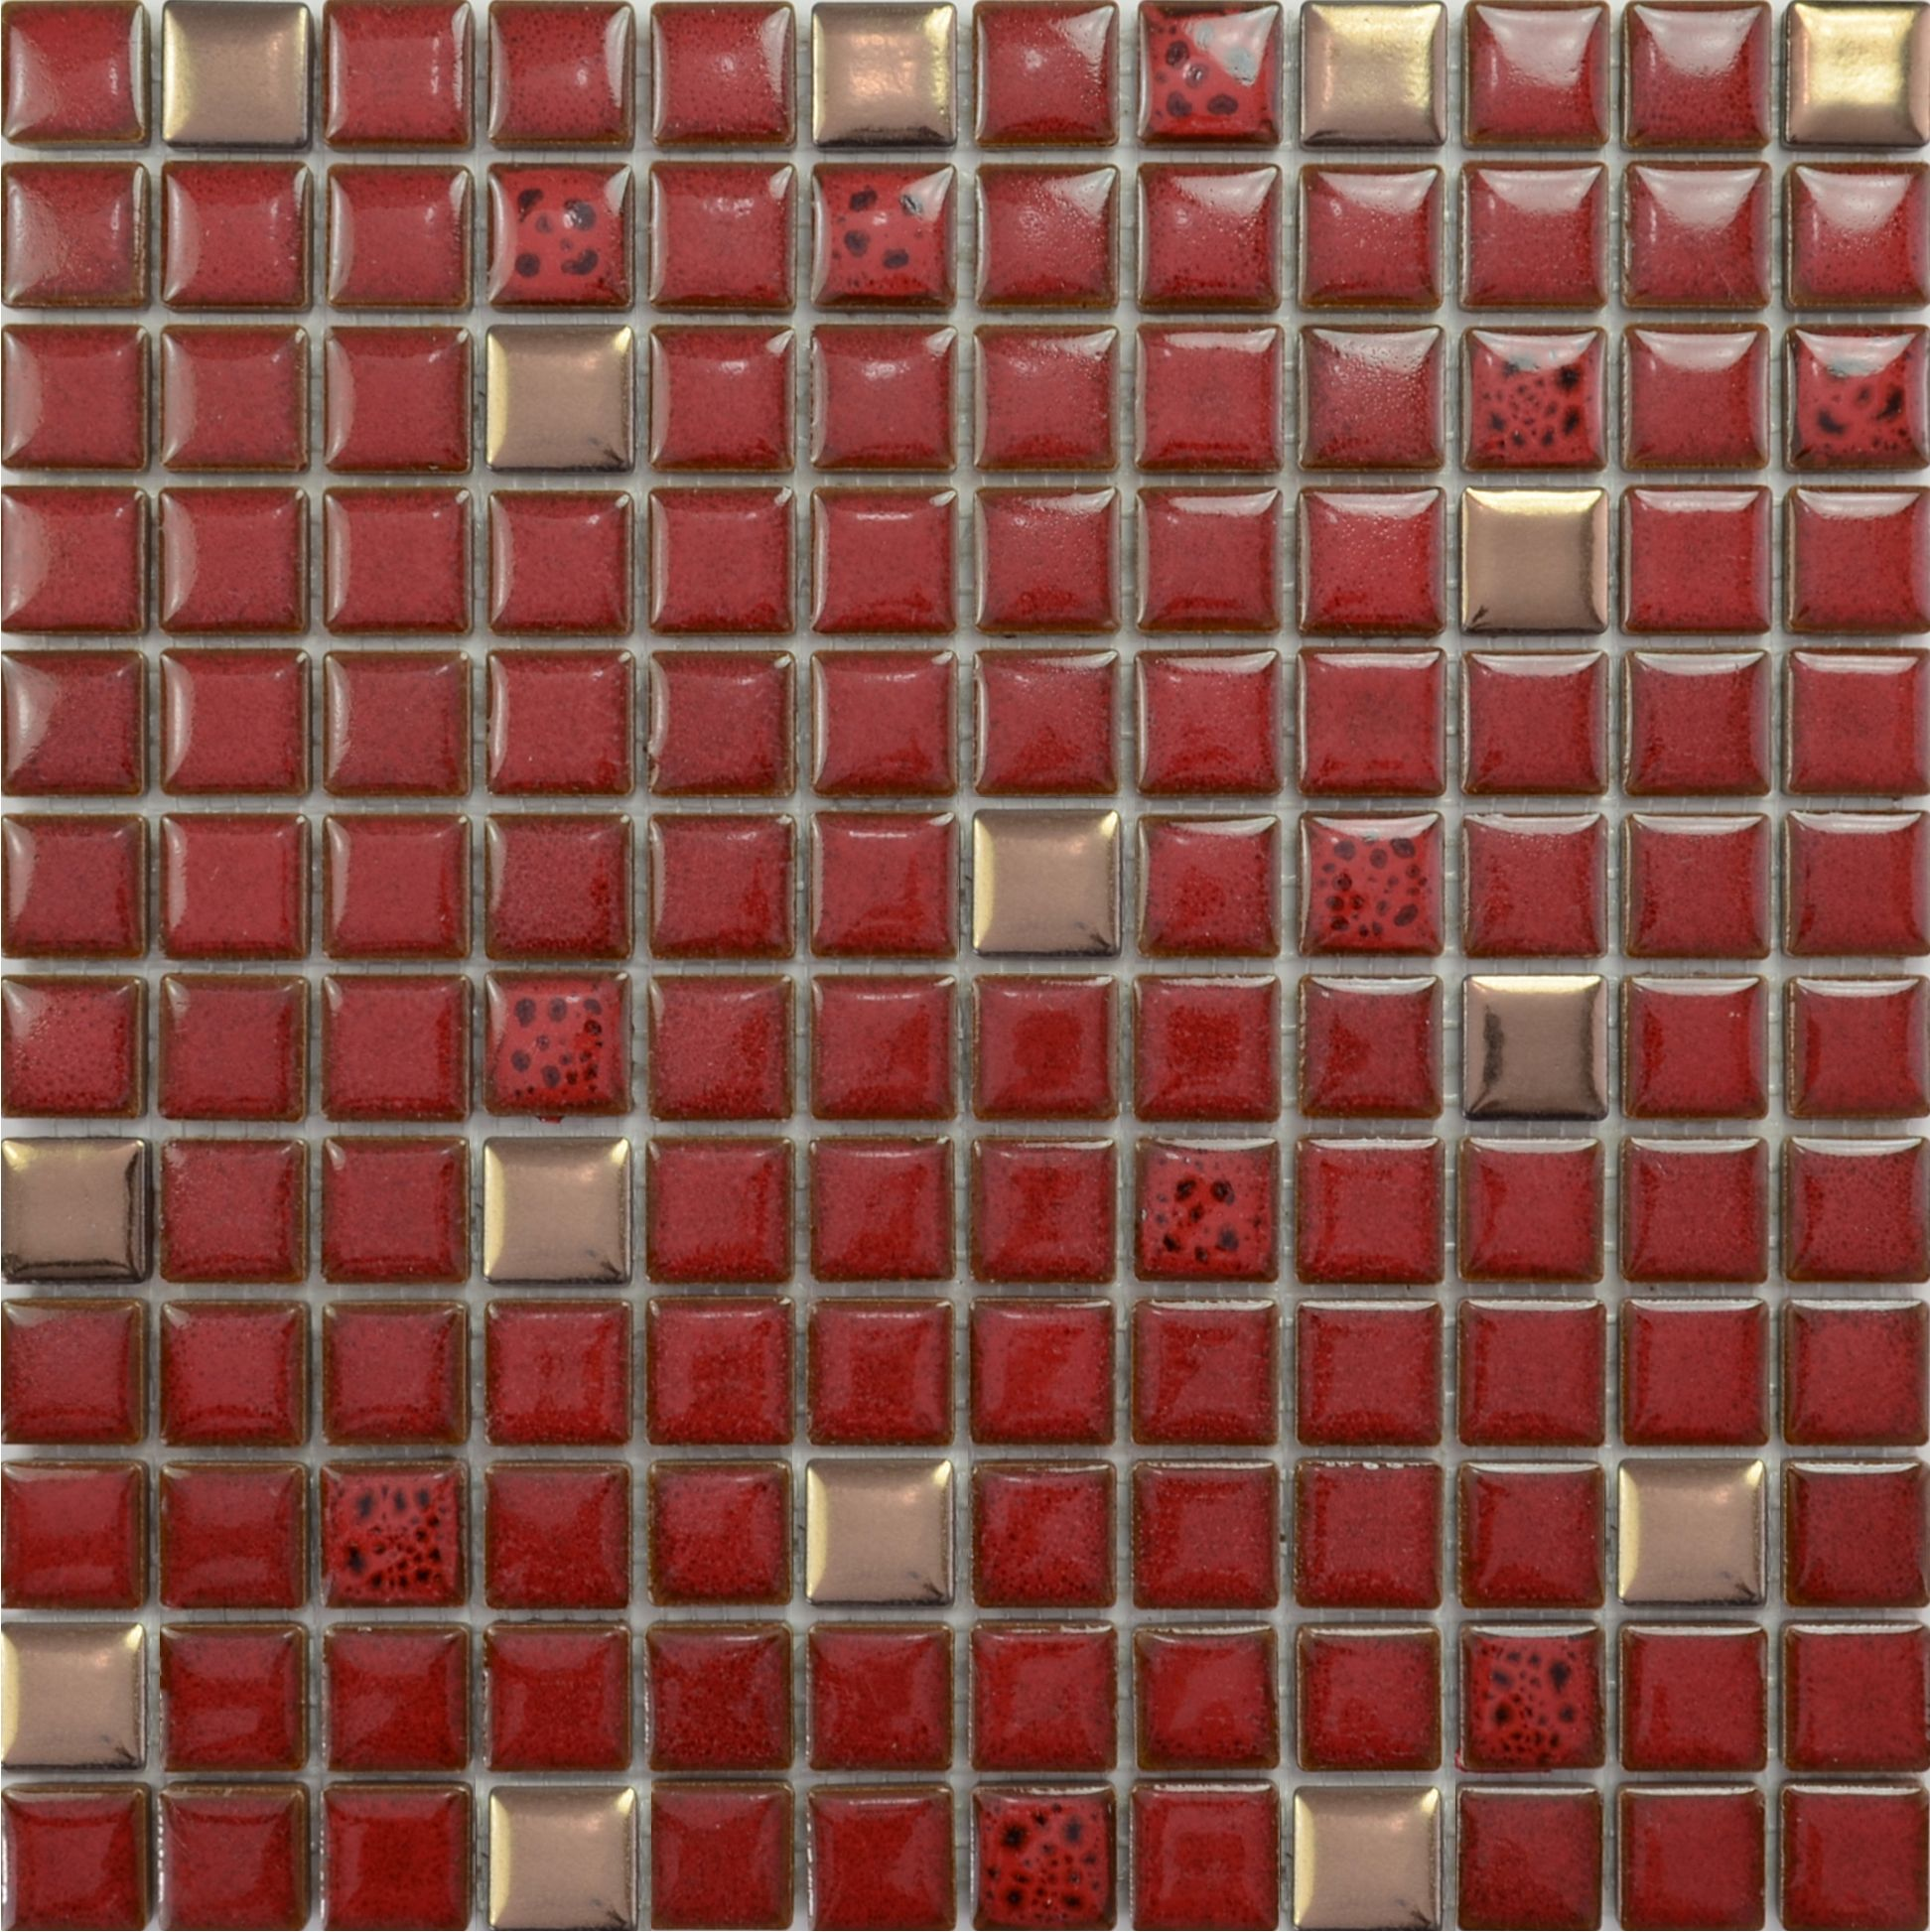 Red Tile Kitchen Backsplash Glazed Porcelain Mosaic Tile Sheets Gold Mosaic  Bathroom Shower Wall Tiles Design